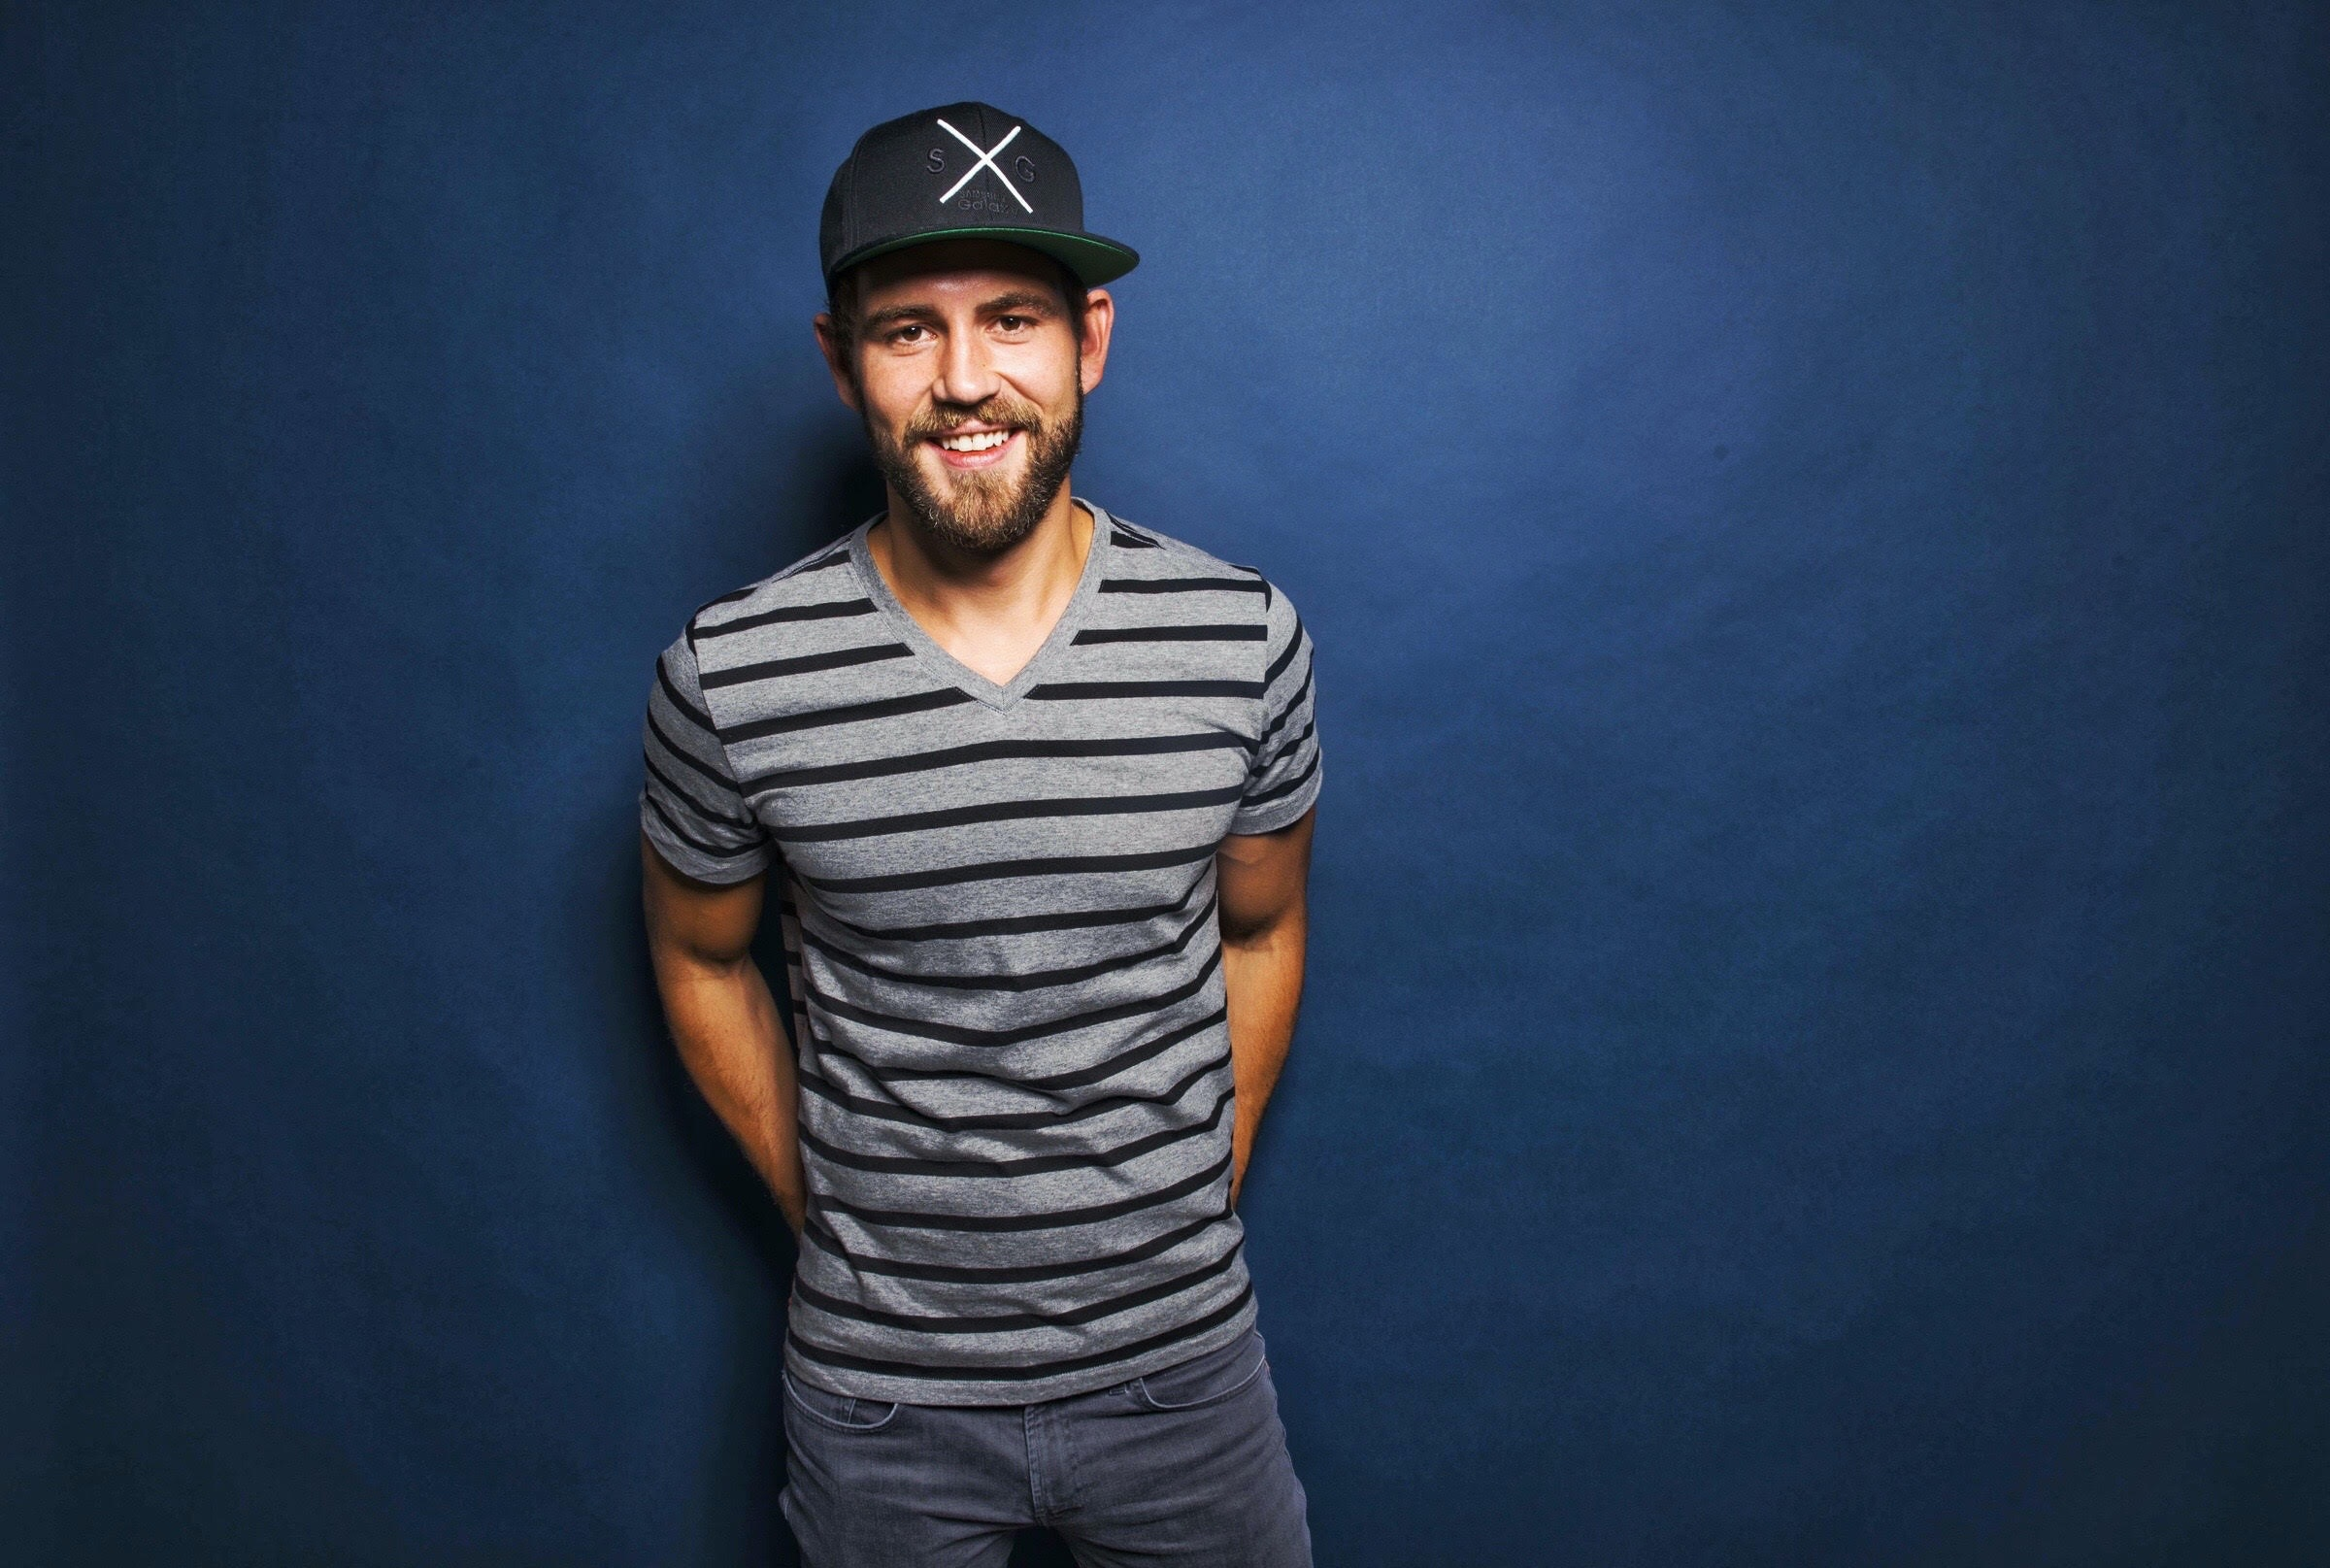 Who is nick viall dating 2019